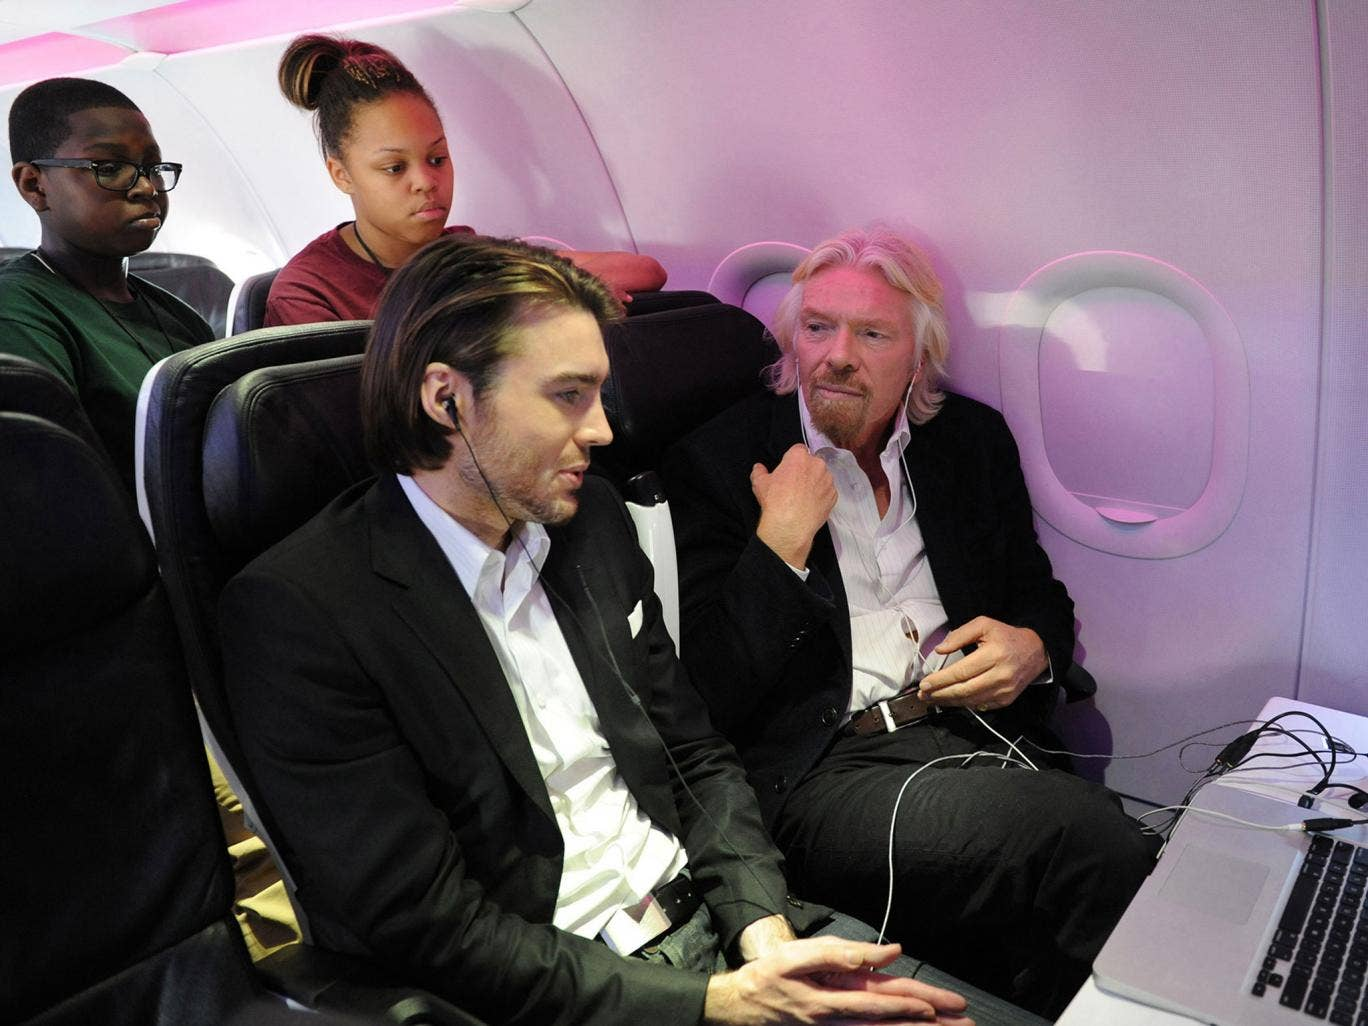 Founder Sir Richard Branson (R) celebrates the launch of its new service to Newark, New Jersey from San Francisco and Los Angeles with Mashable CEO & Founder Pete Cashmore onboard aircraft at Newark Liberty International Airport at Newark, New Jersey